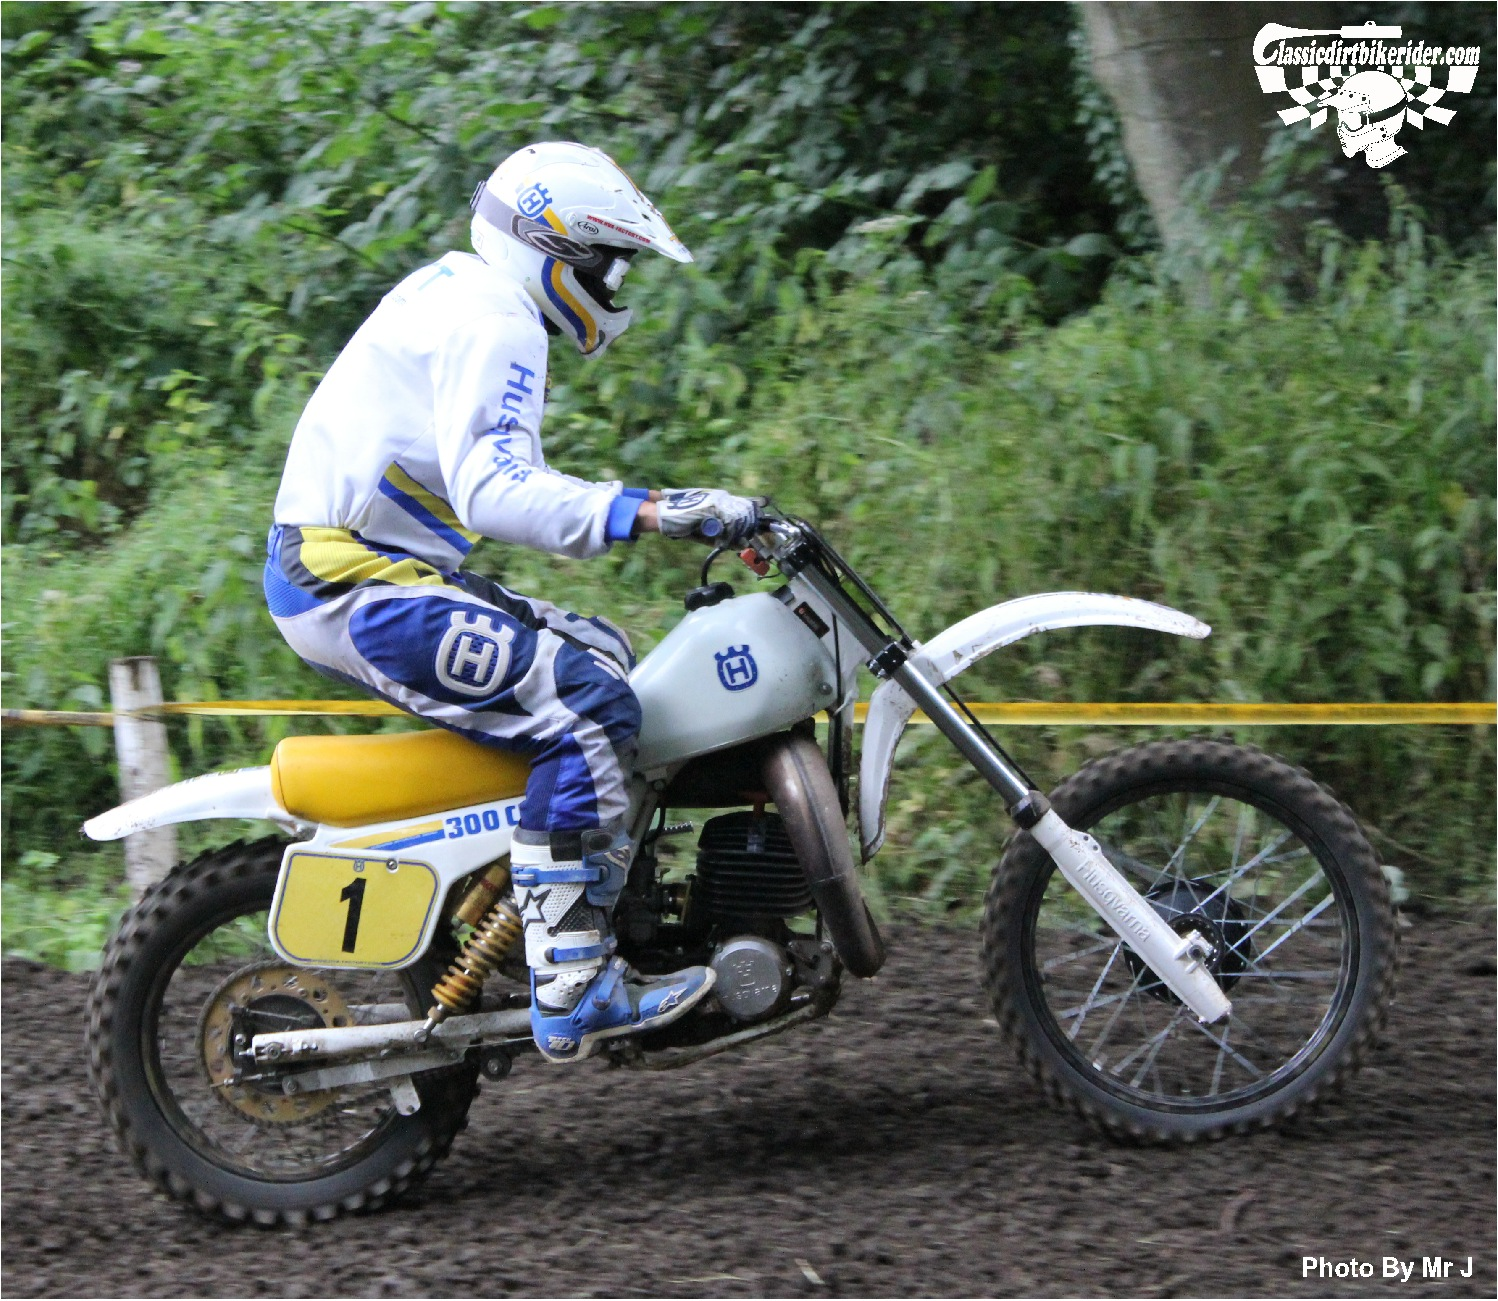 king of the castle 2015 photos Farleigh Castle twinshock motocross classicdirtbikerider.com 63